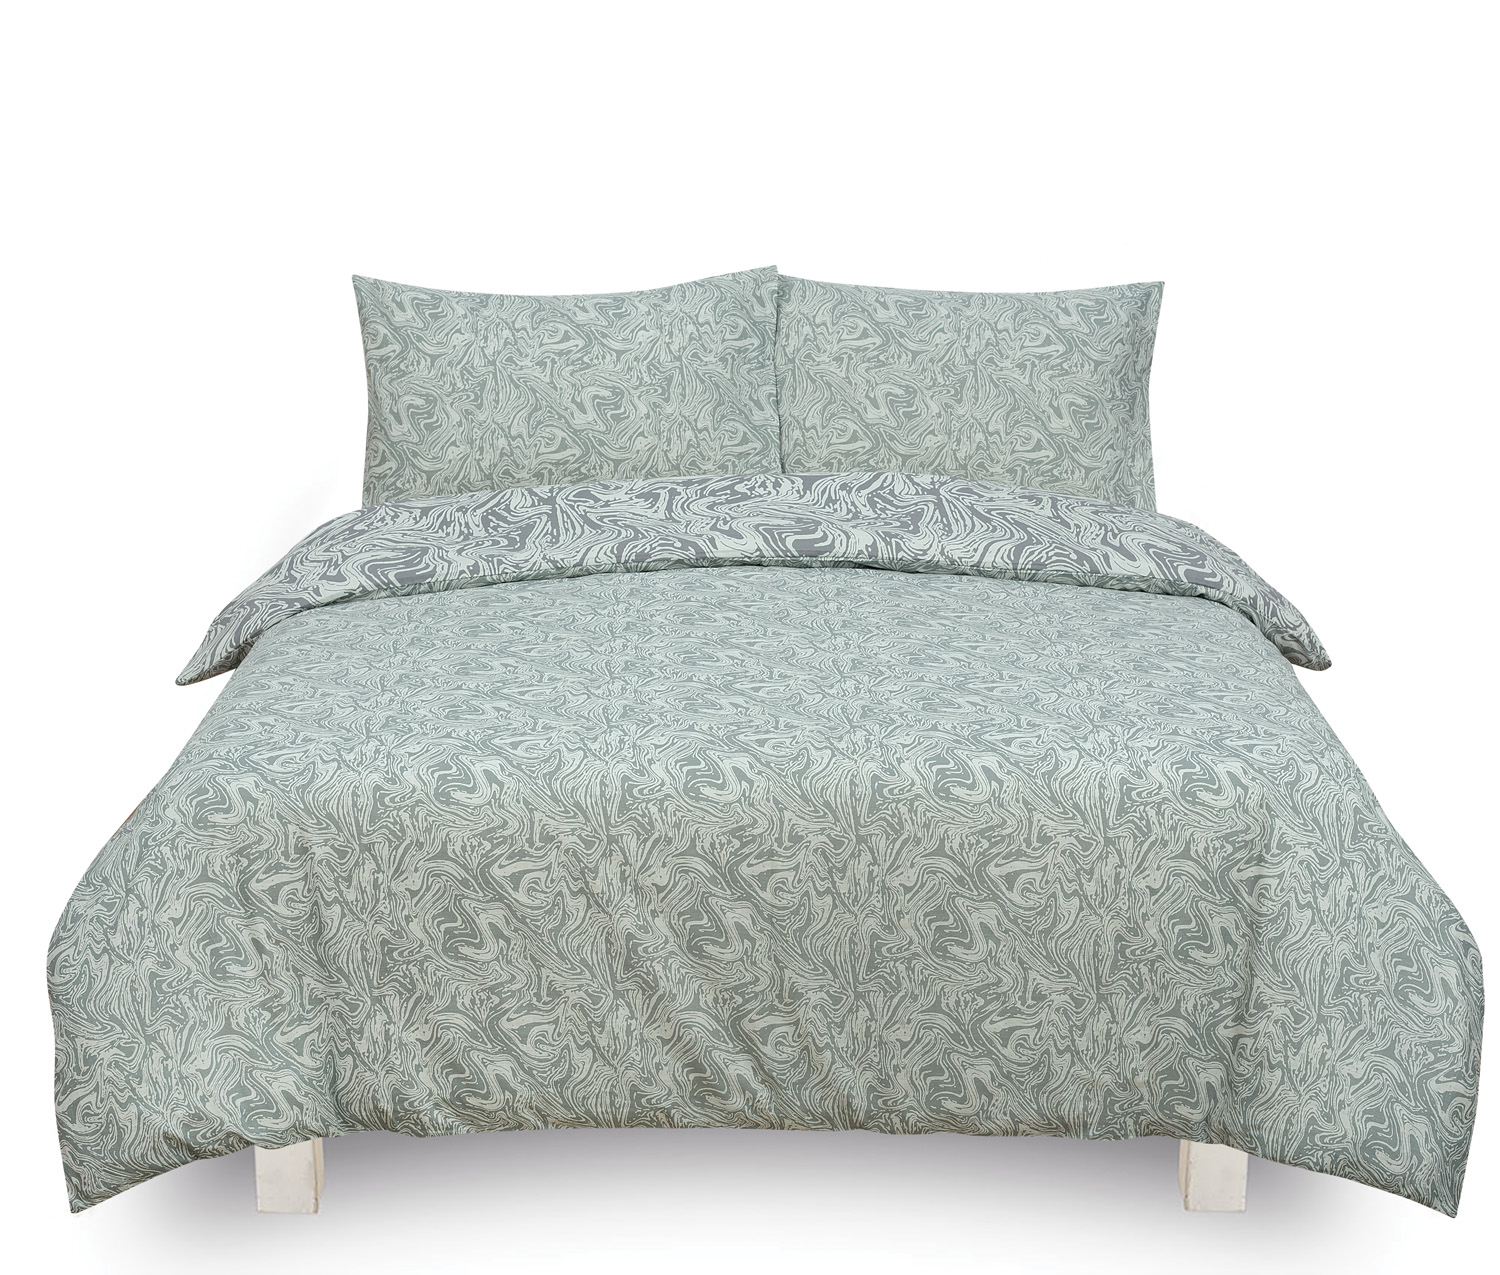 Marble Silver Reversible Rotary King Bed Duvet Quilt Cover Set